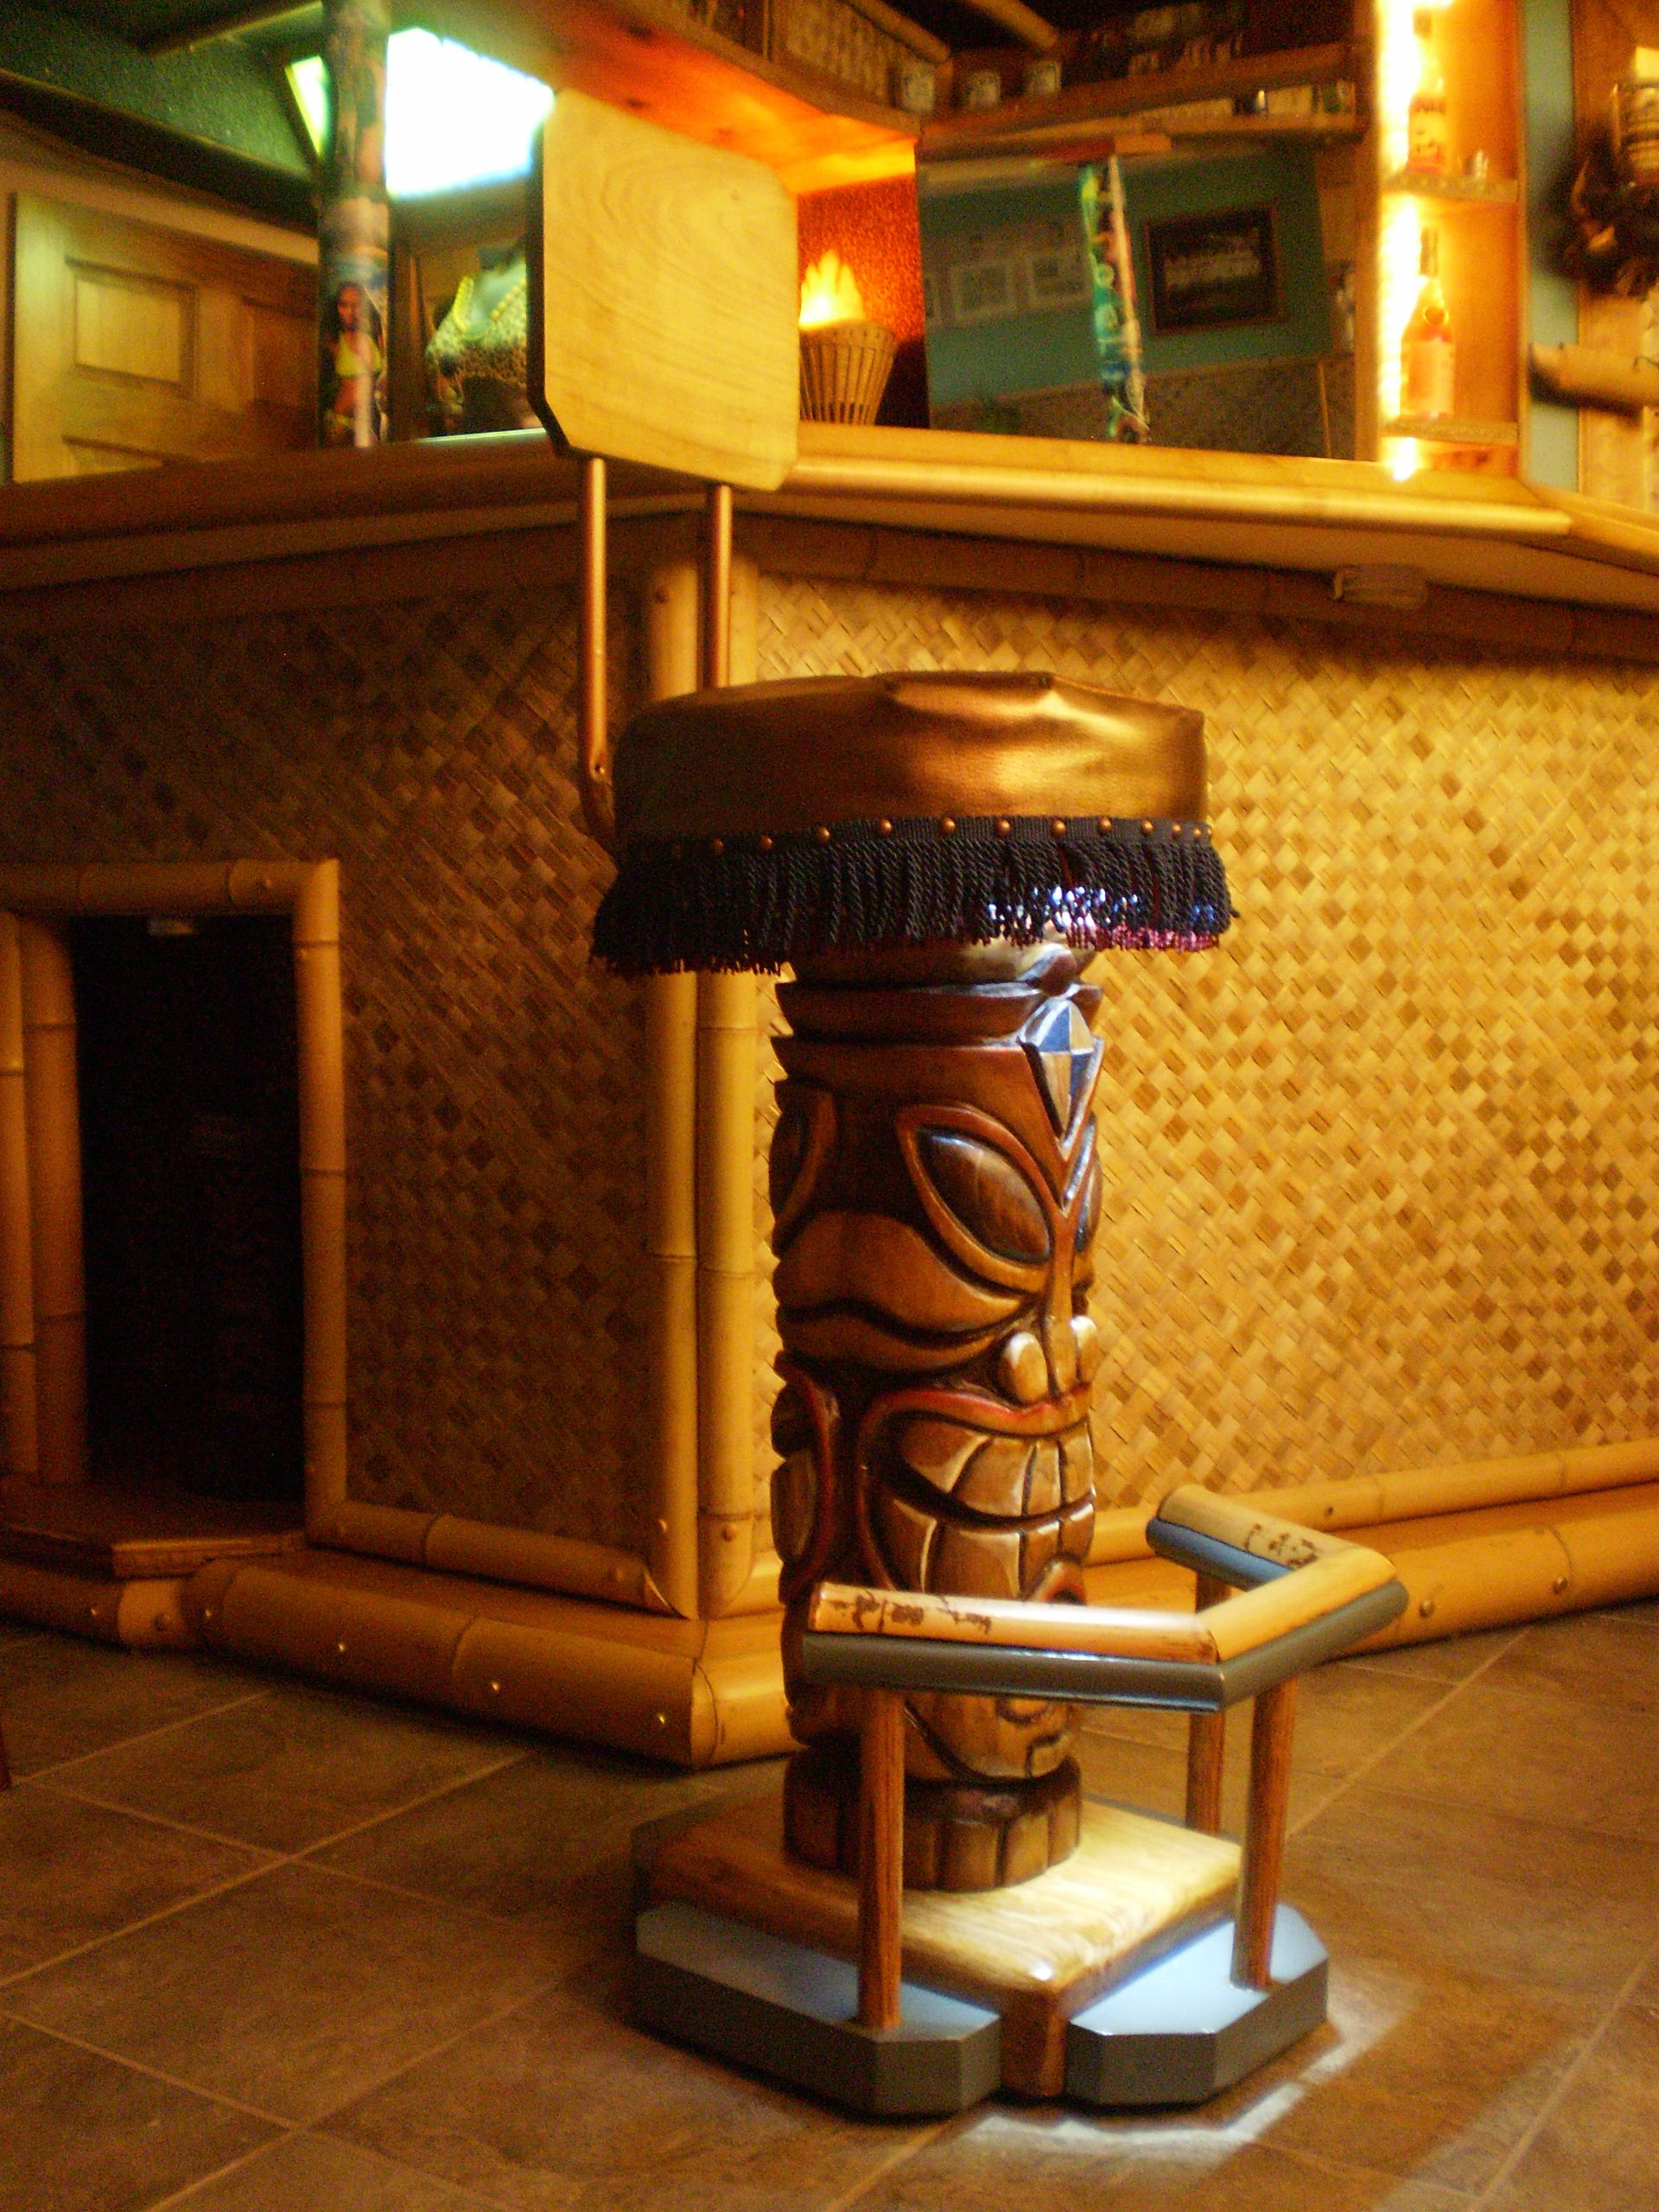 Man Cave Tiki Bar : Moved permanently